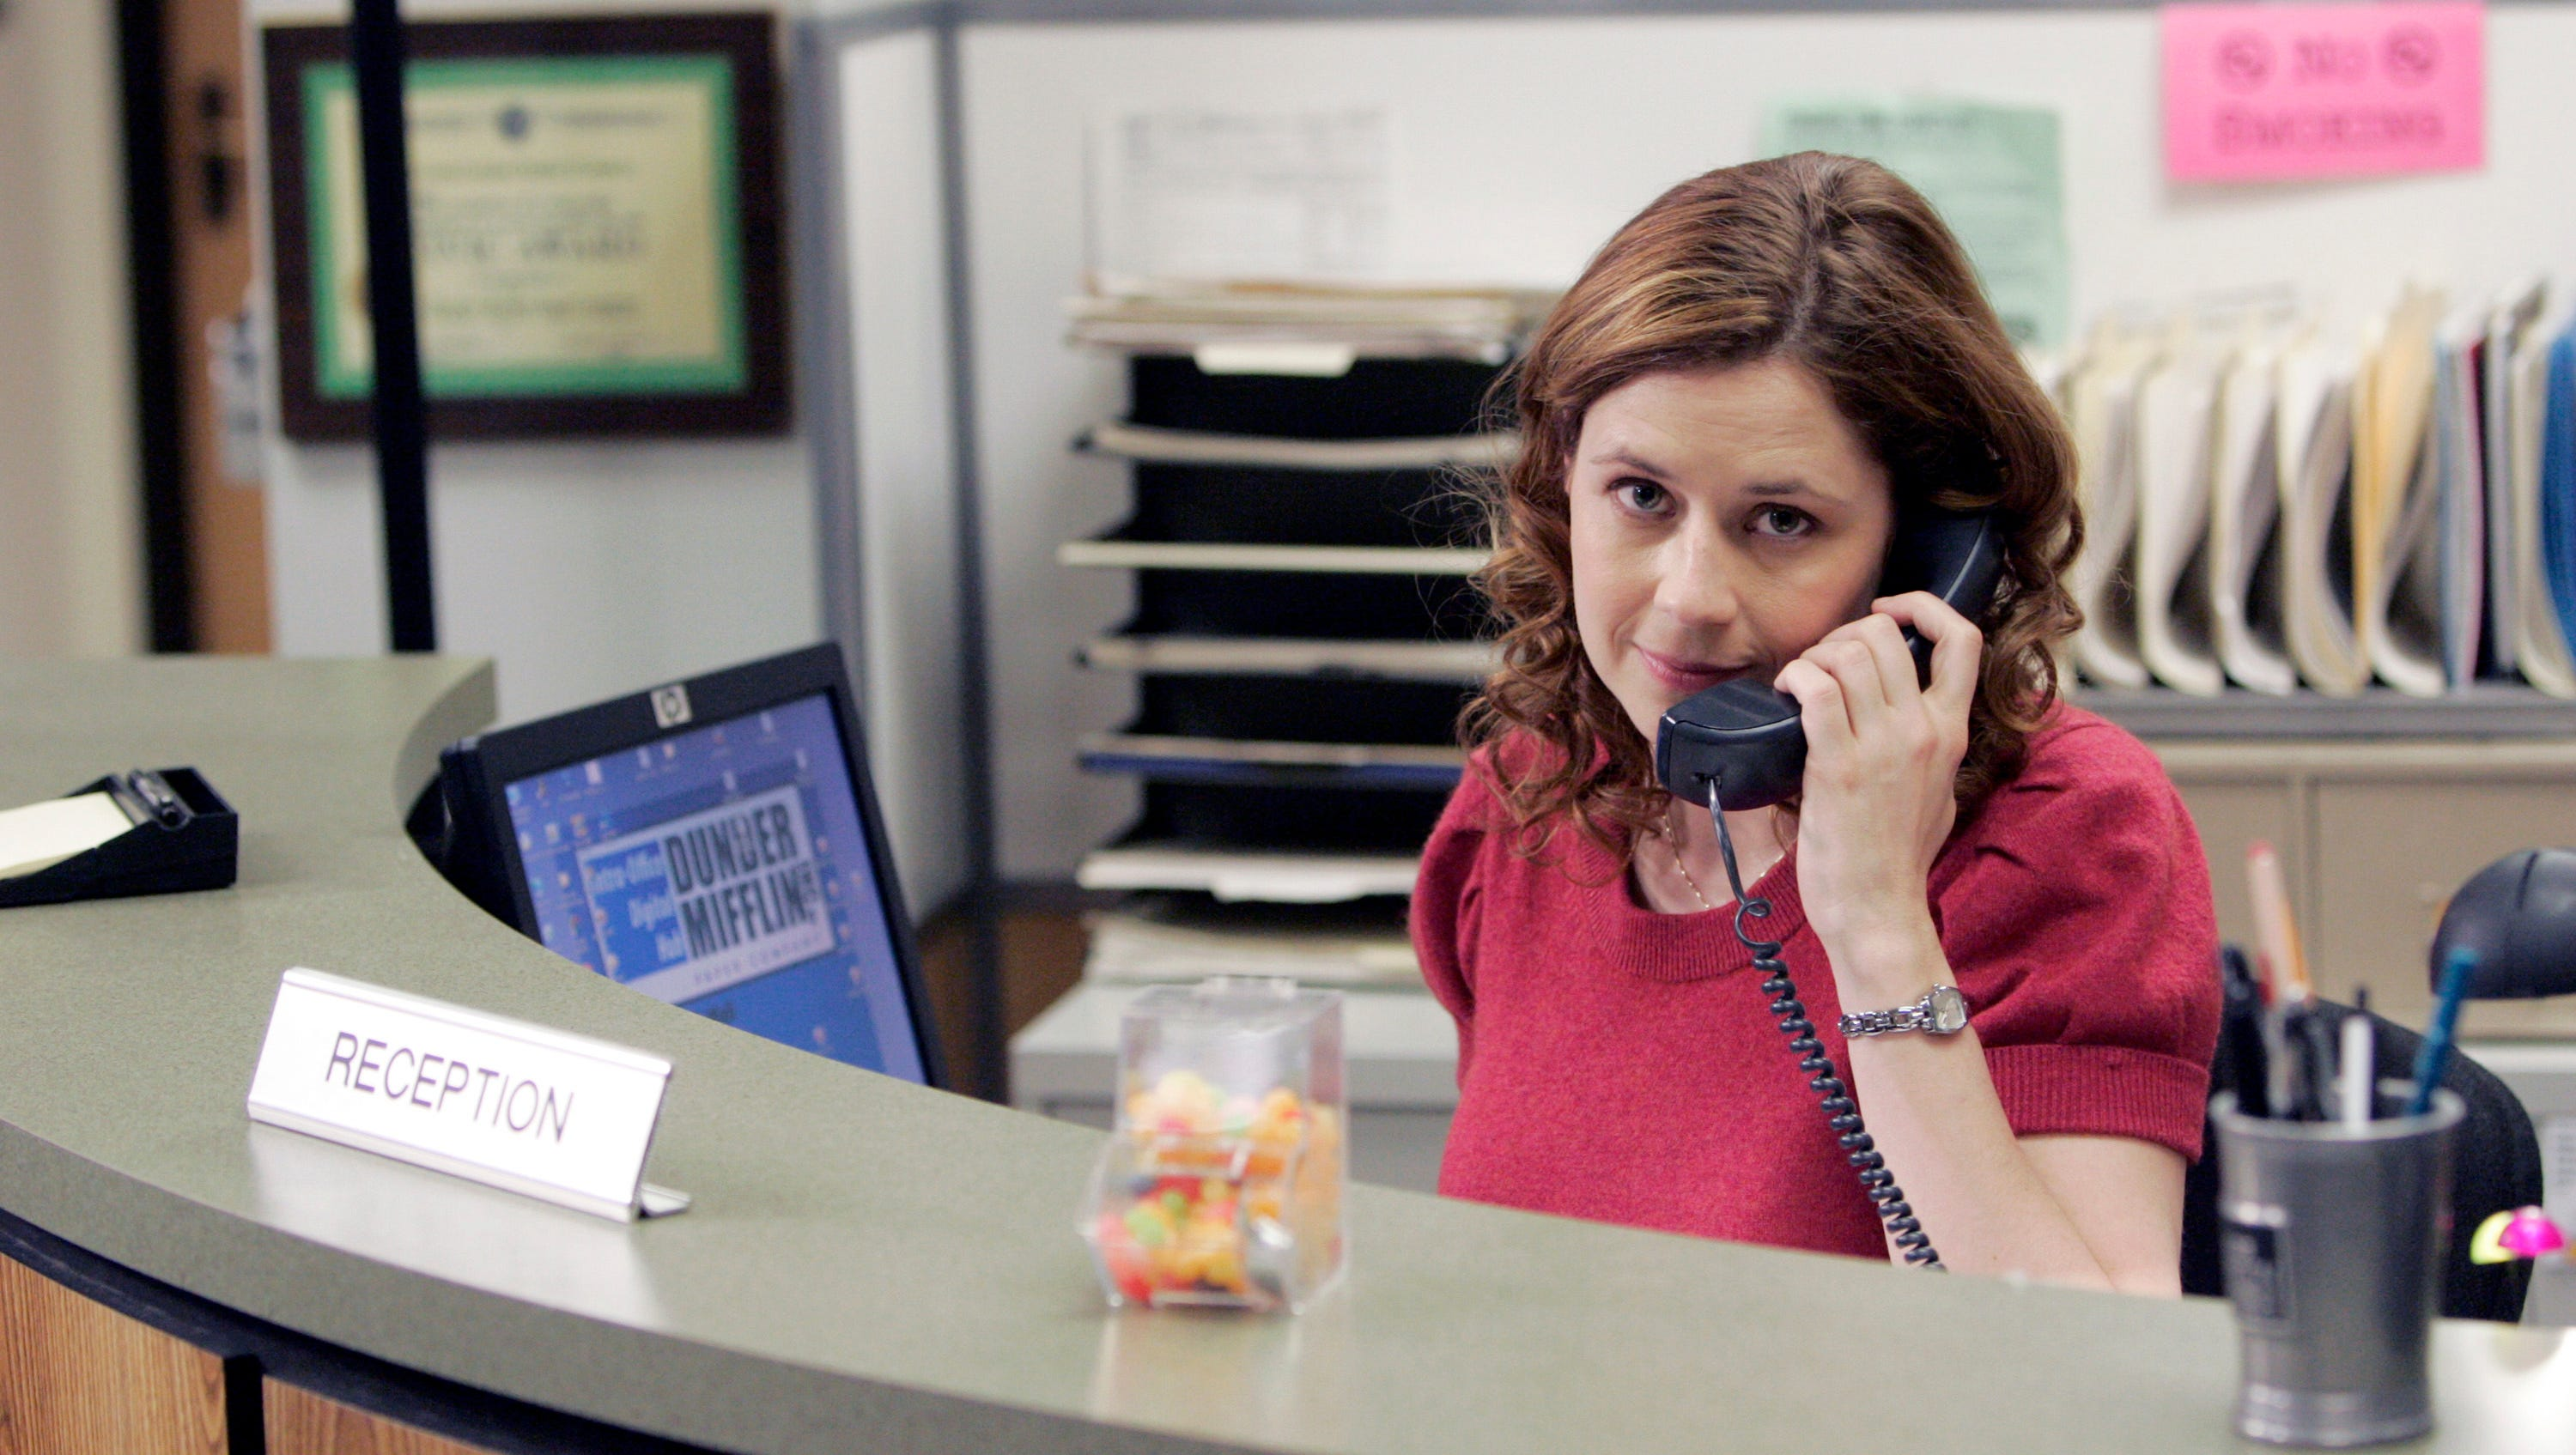 Chili's lifts ban on 'Office' character Pam Beesly